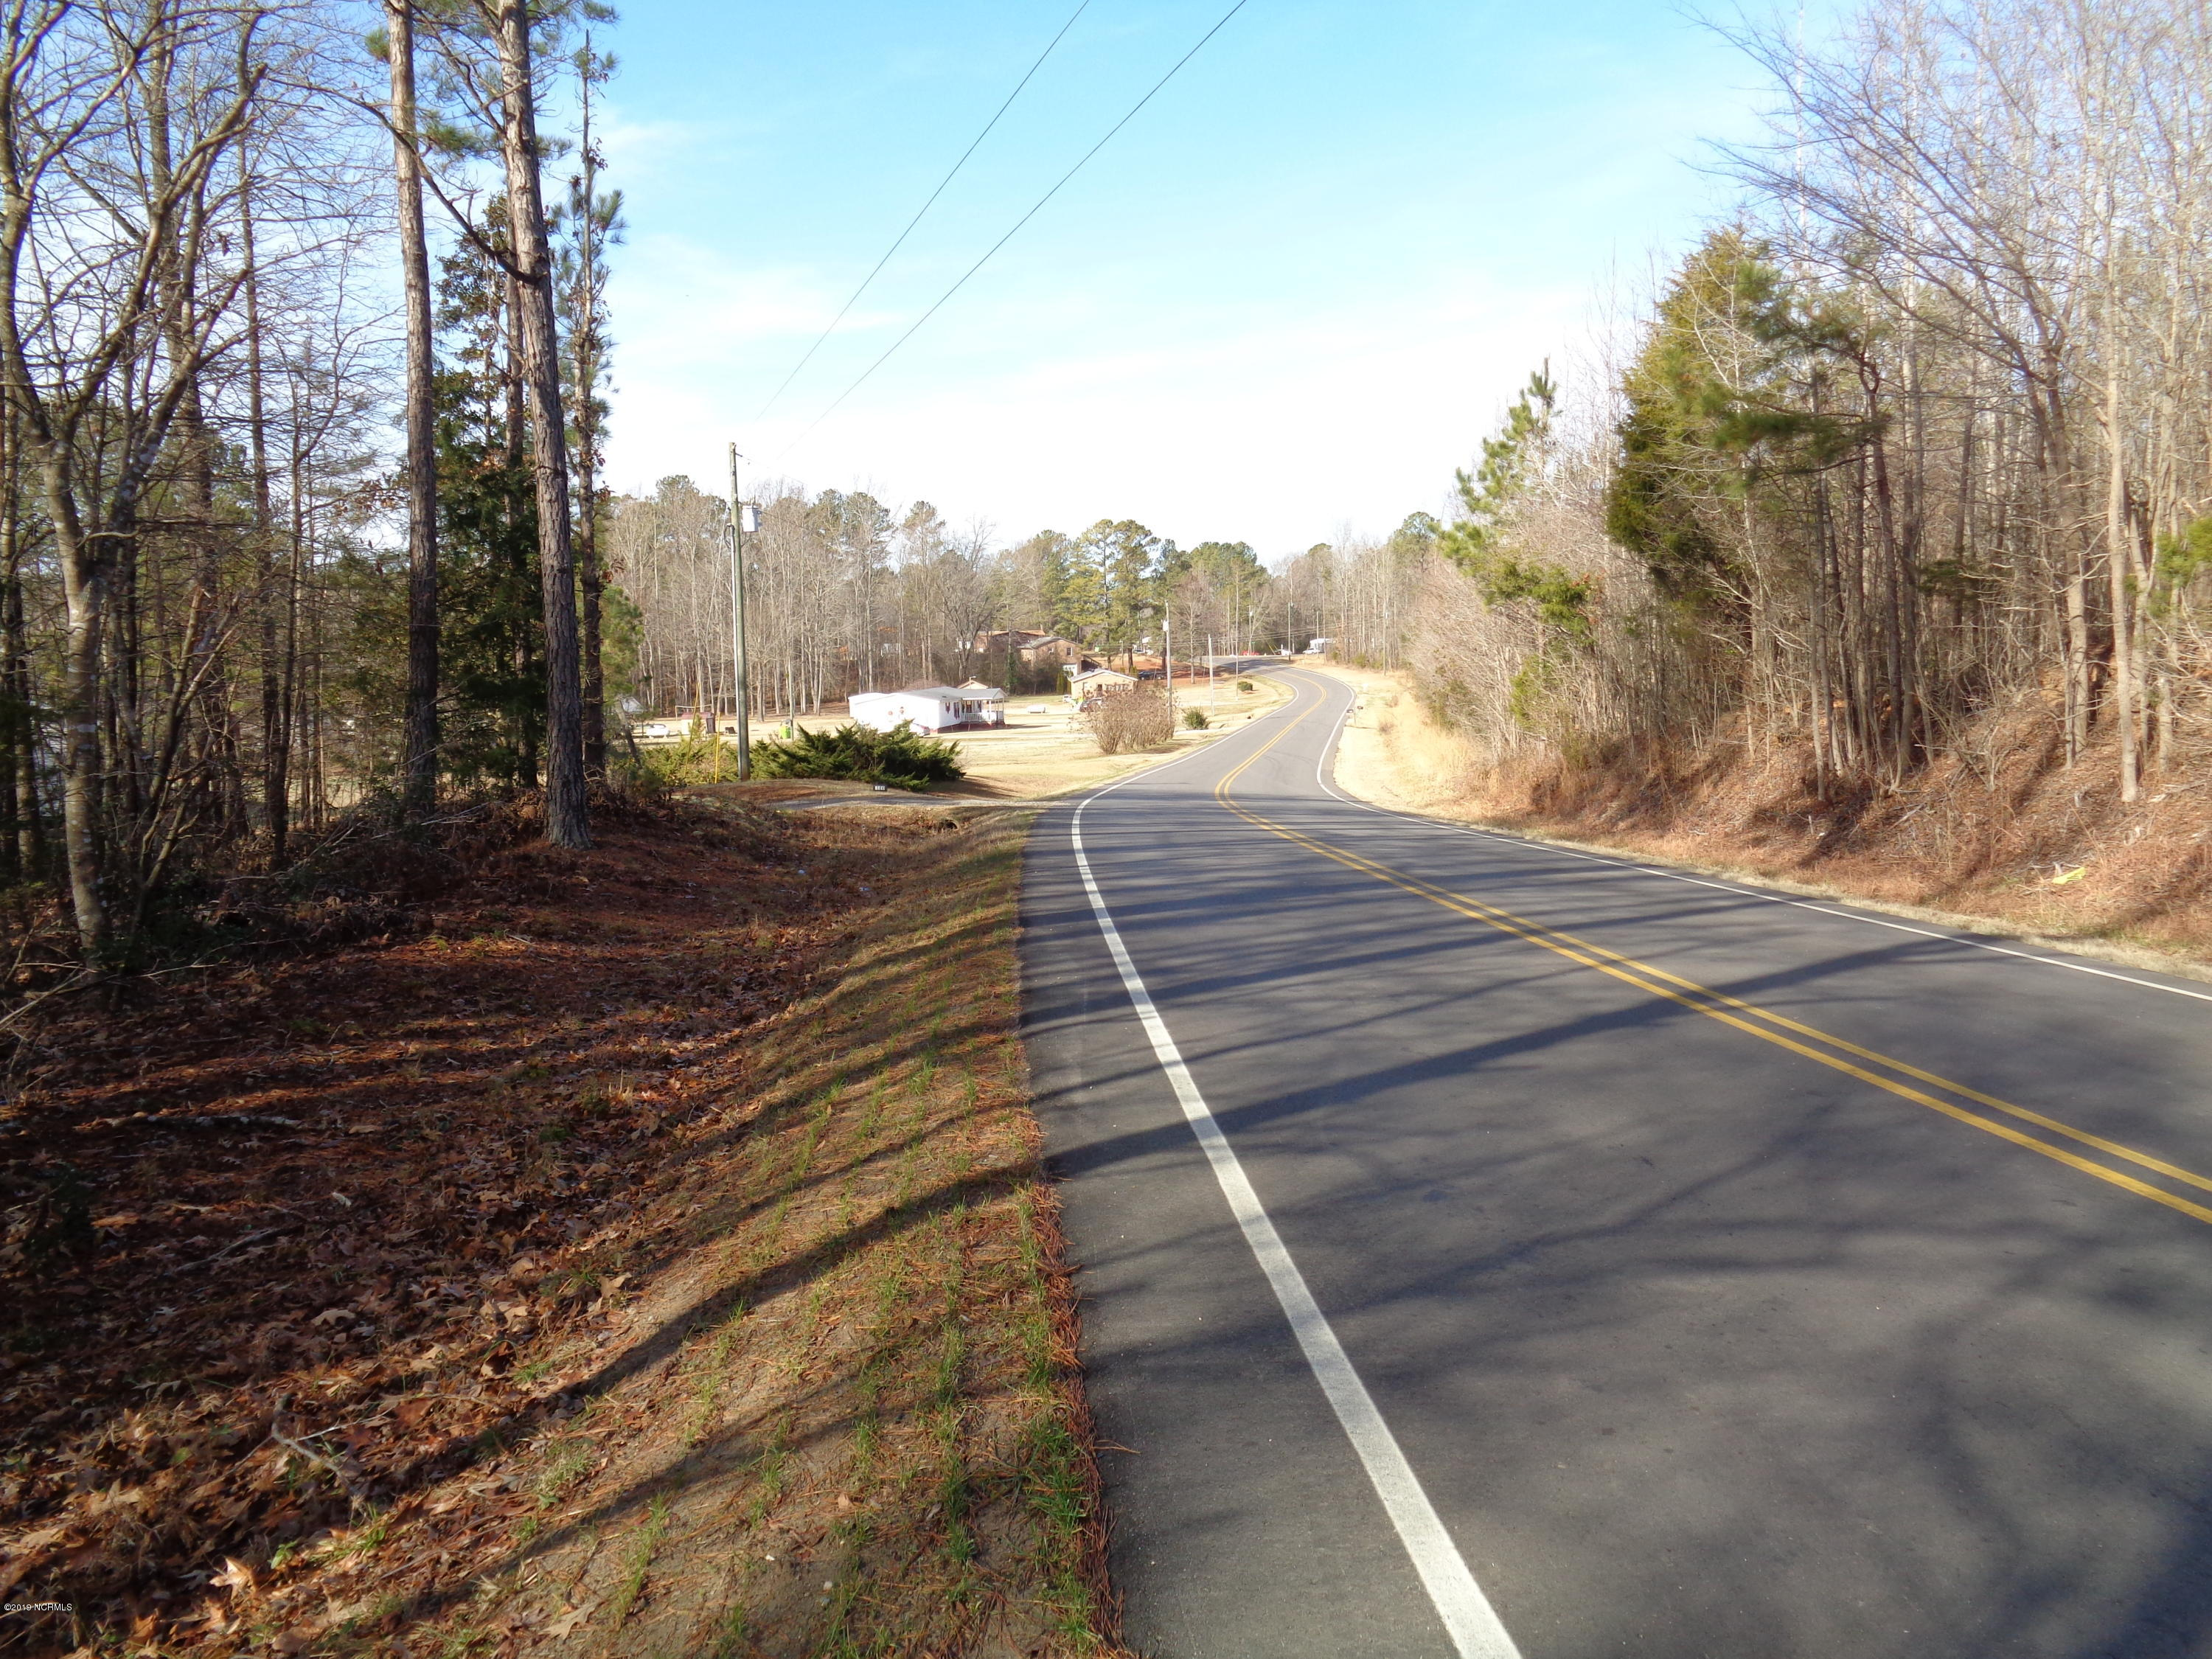 000 Medoc Mountain Road, Hollister, North Carolina 27844, ,Residential land,For sale,Medoc Mountain,100197398